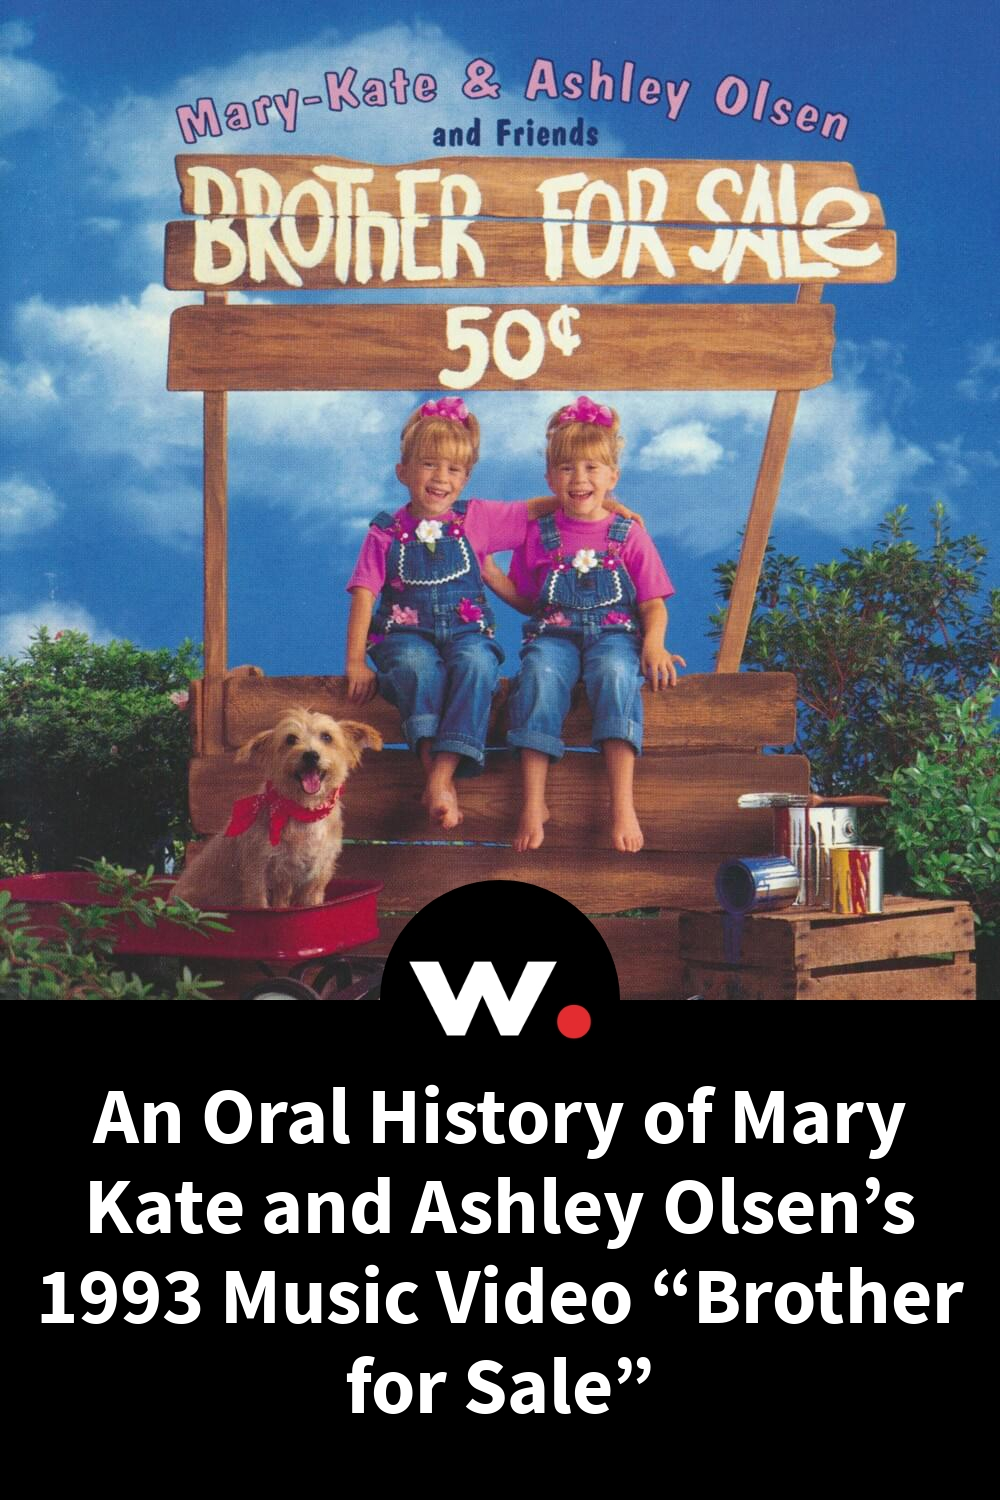 """An Oral History of Mary Kate and Ashley Olsen's 1993 Music Video """"Brother for Sale"""""""